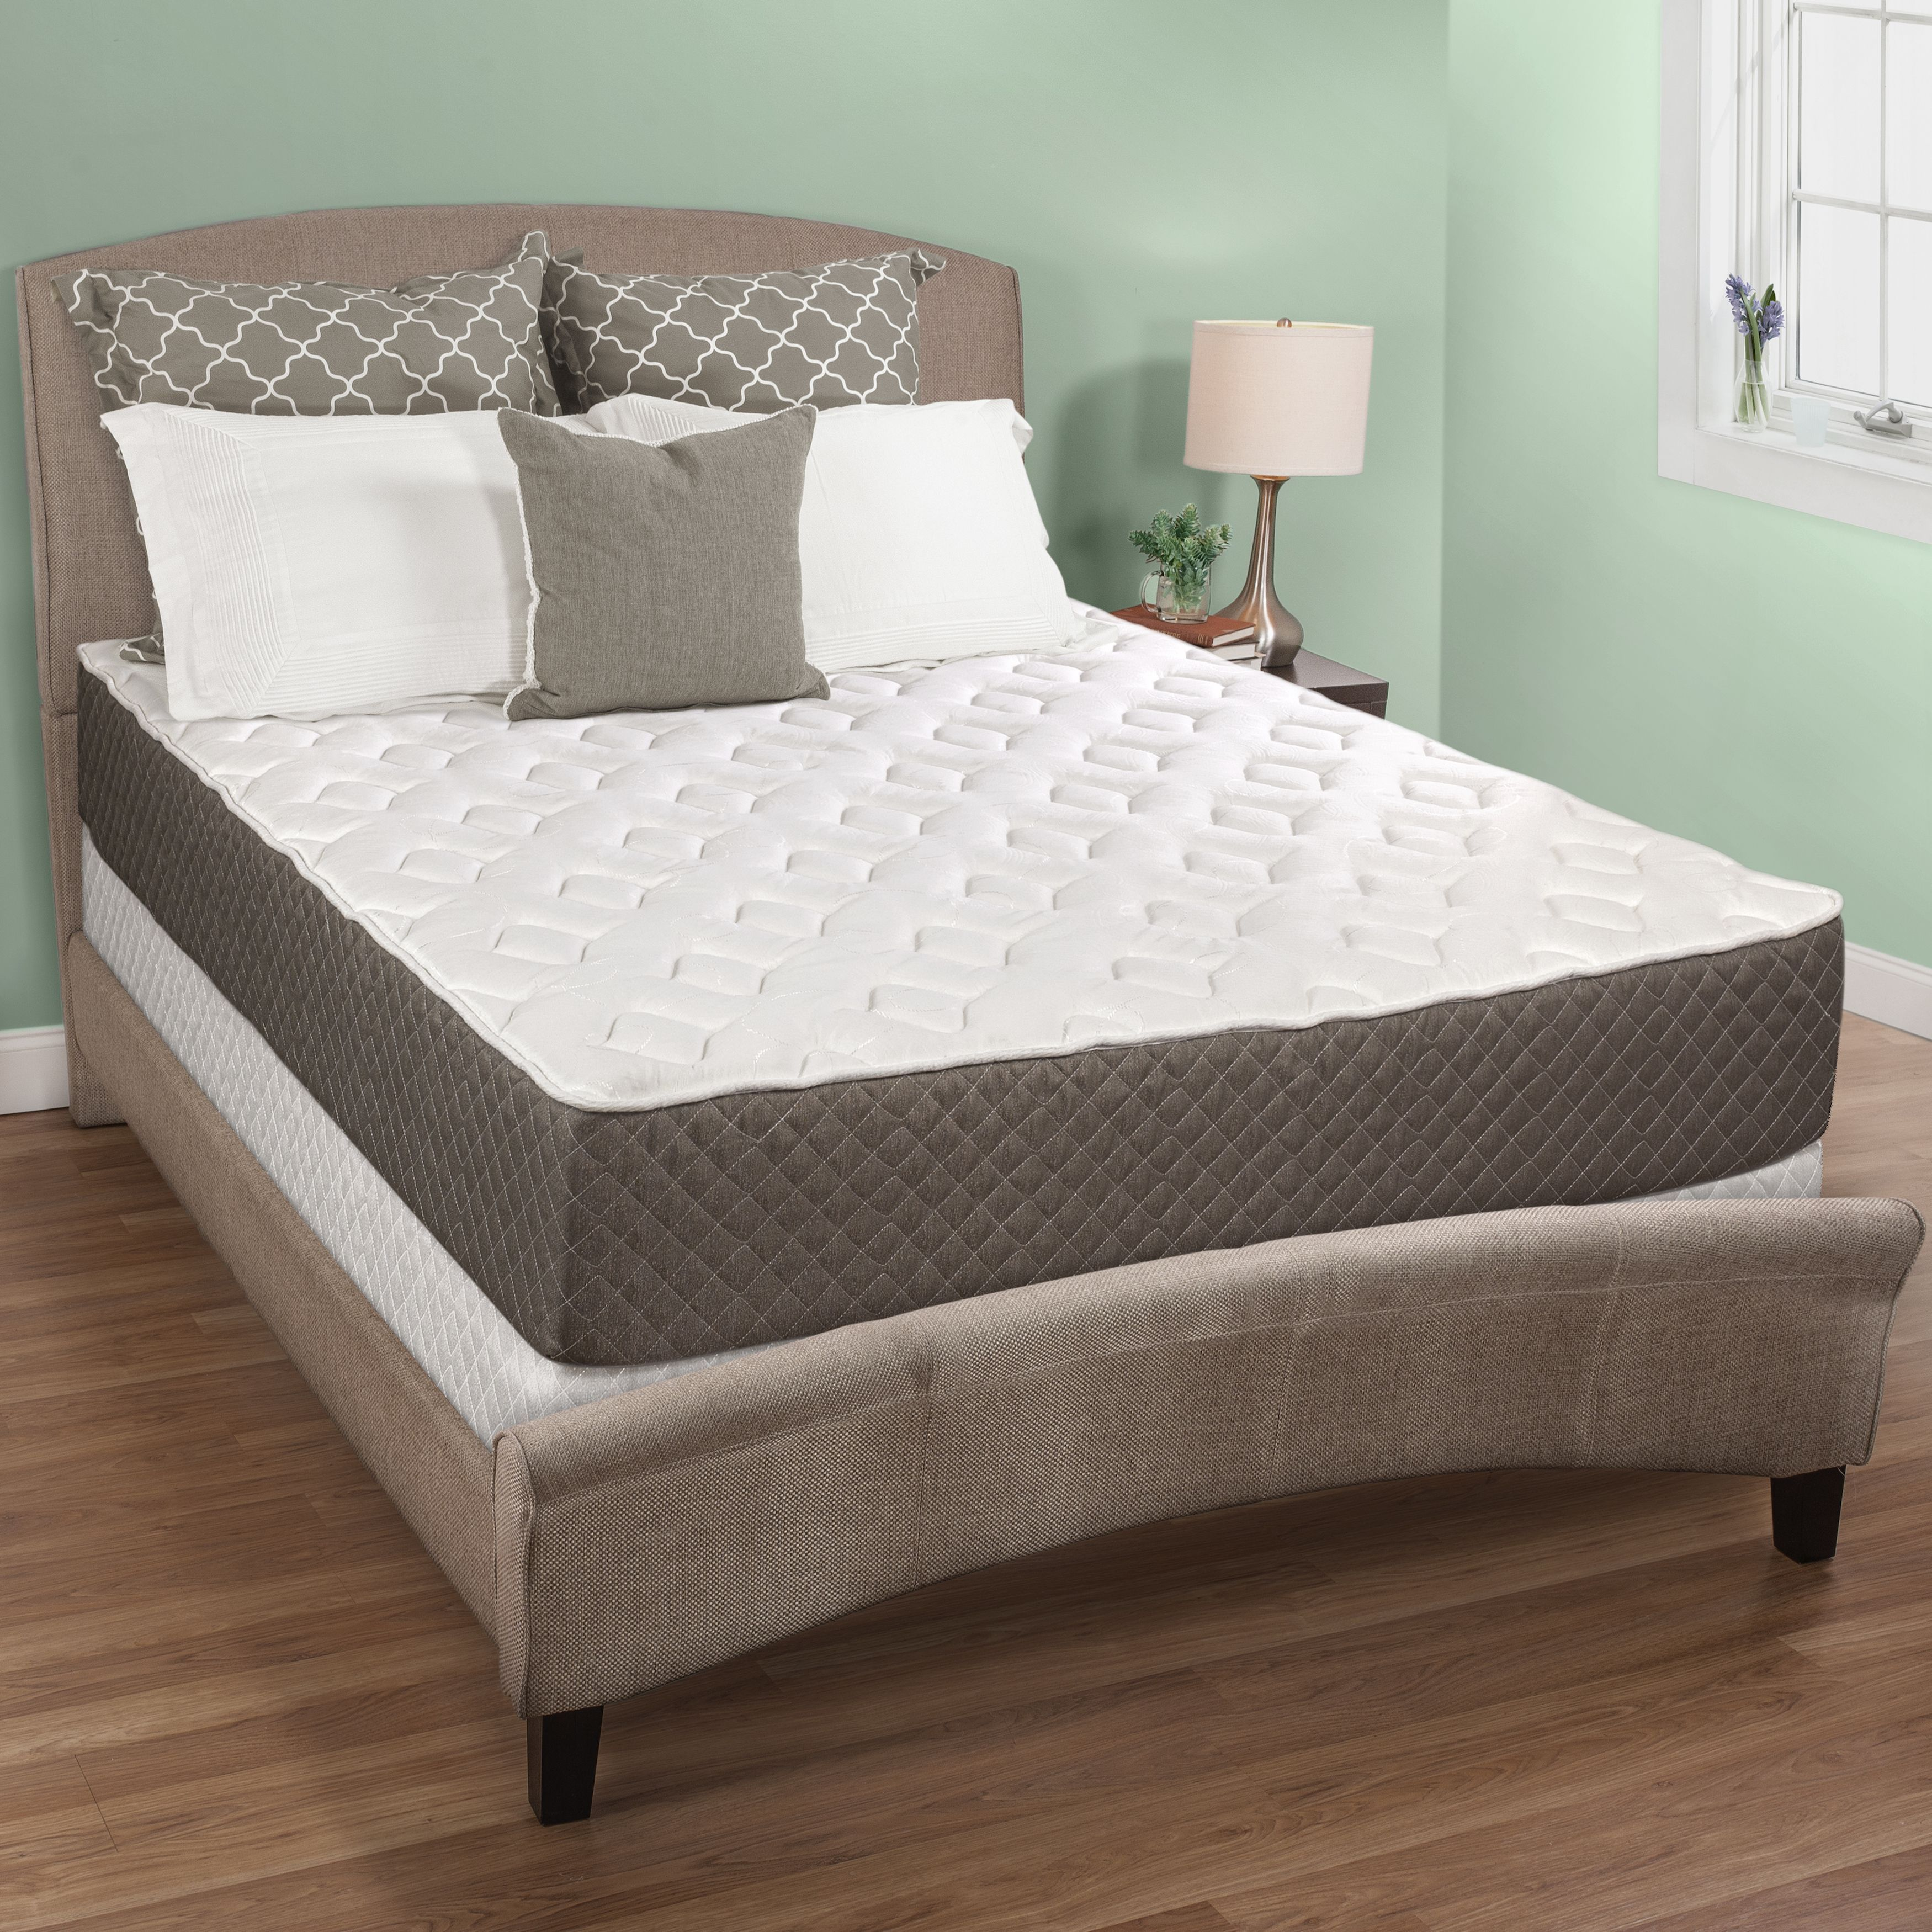 Select Luxury 10inch Queen Size Quilted Memory Foam